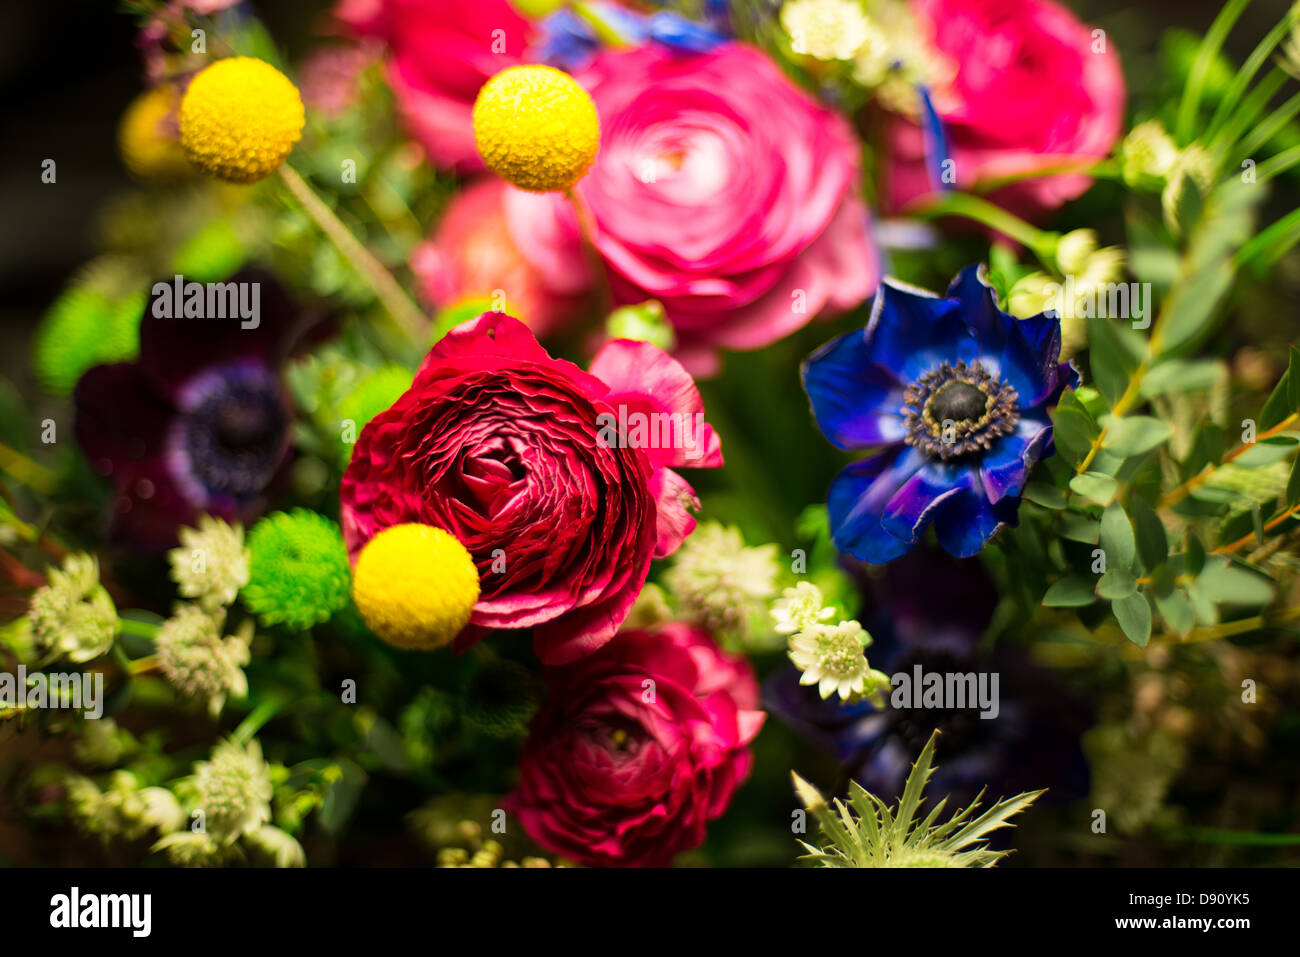 flowers, posey 2 - Stock Image